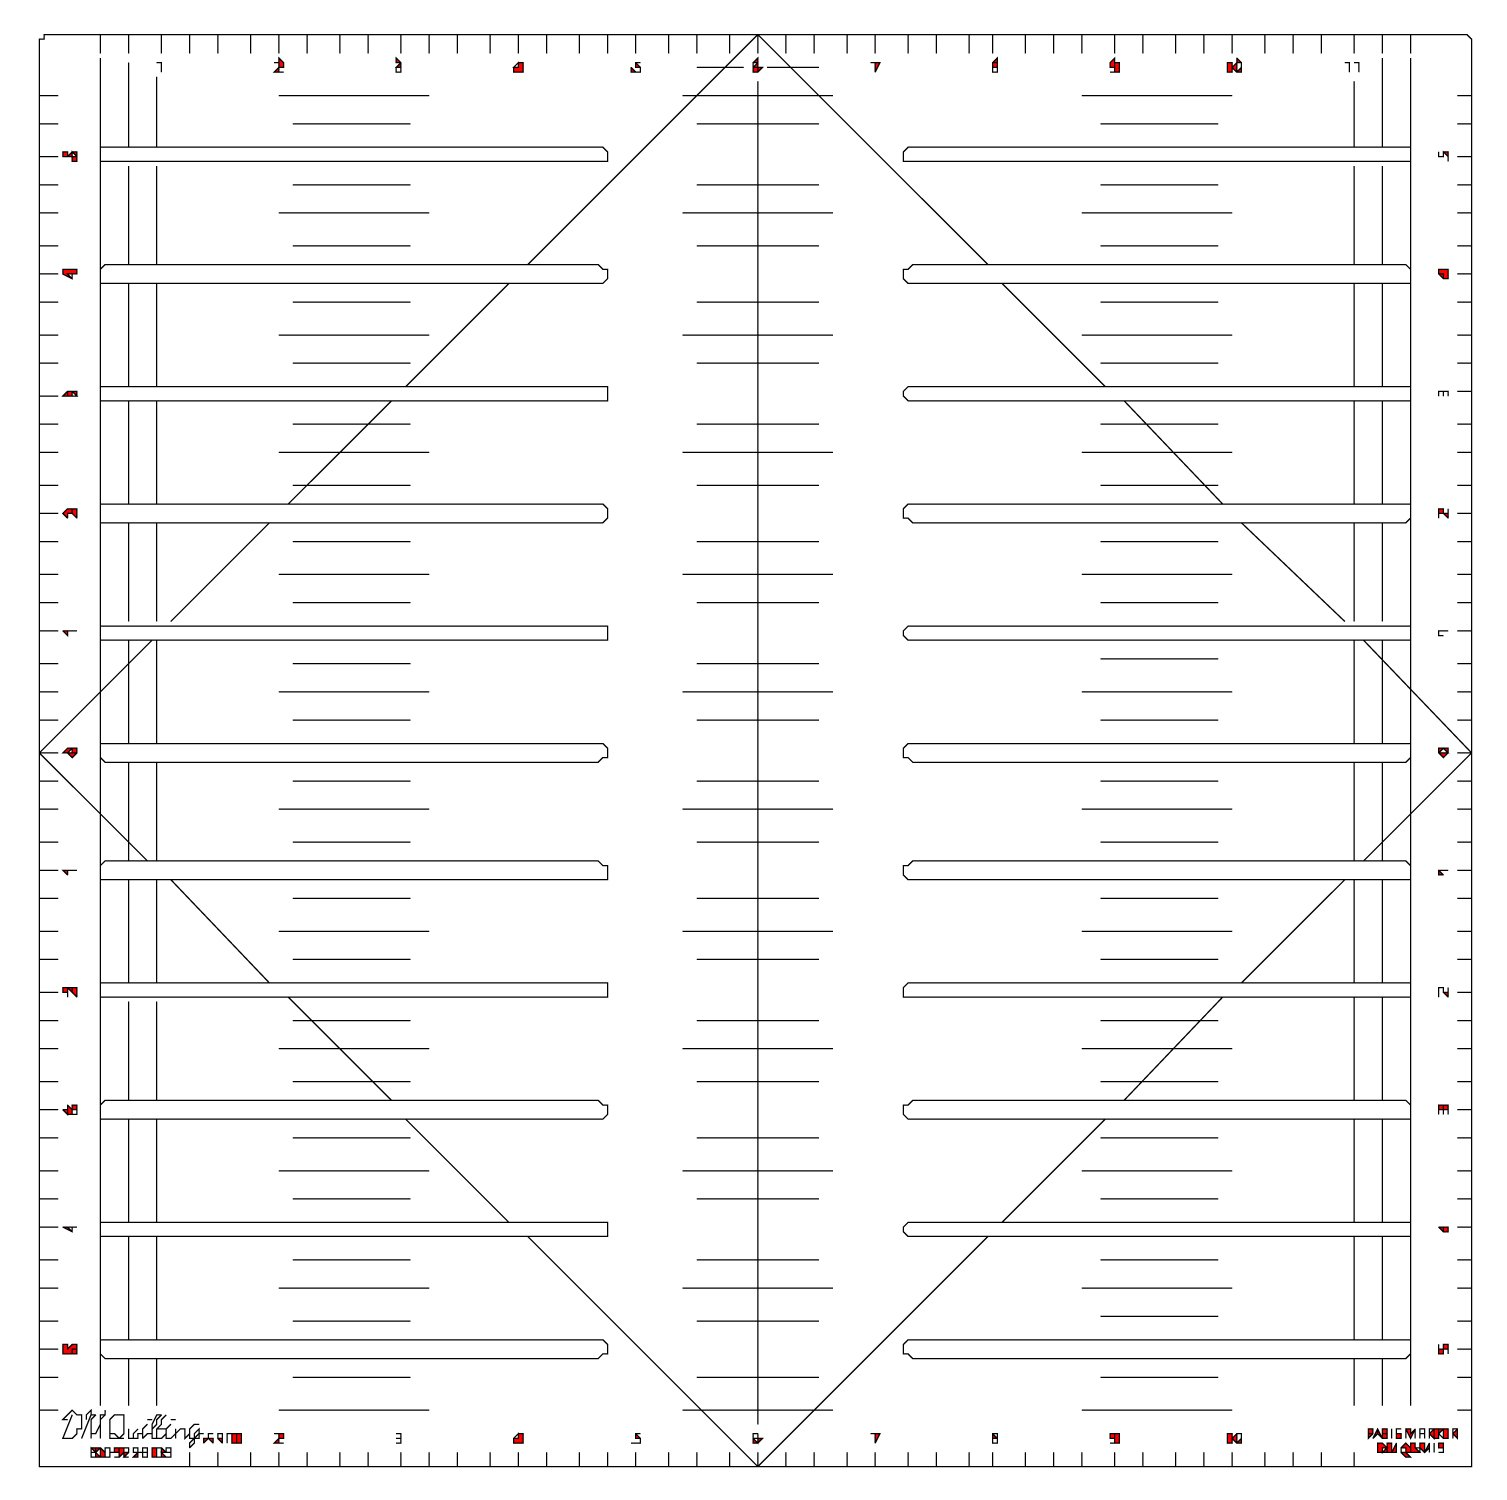 DM Quilting Basic Marker 12in x 12in